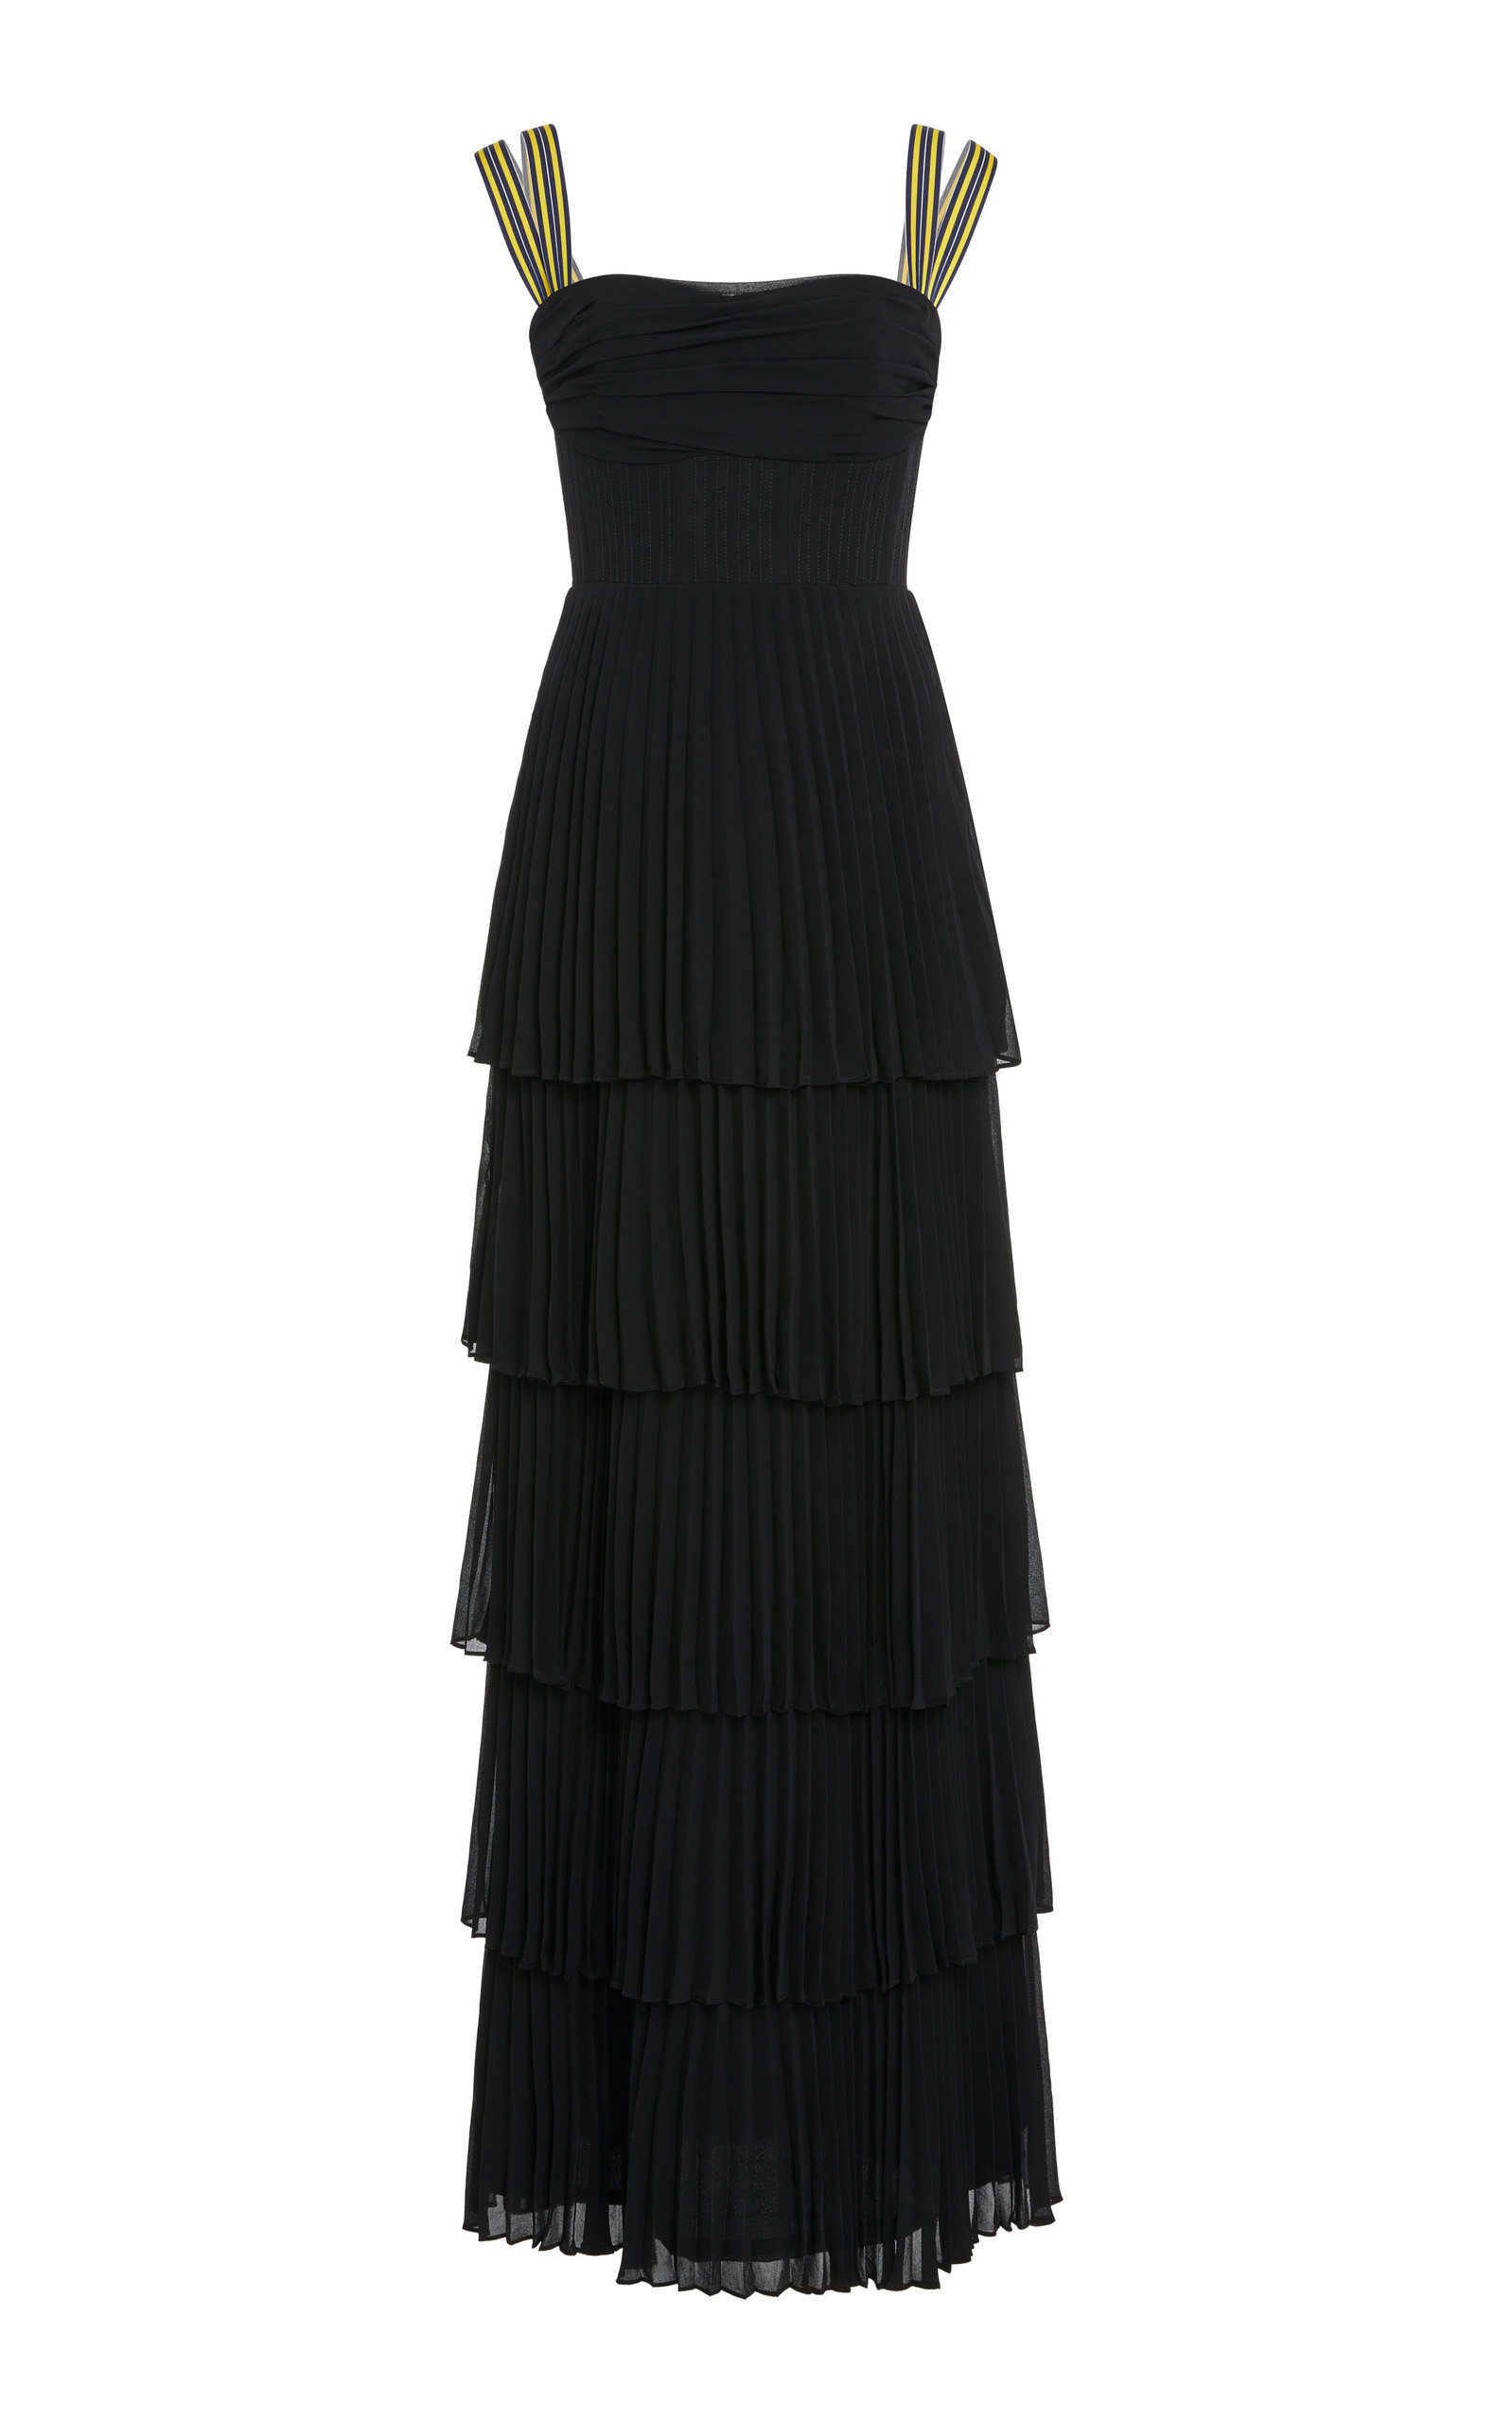 RACHEL GILBERT SOEKIE TIERED PLEATED GOWN